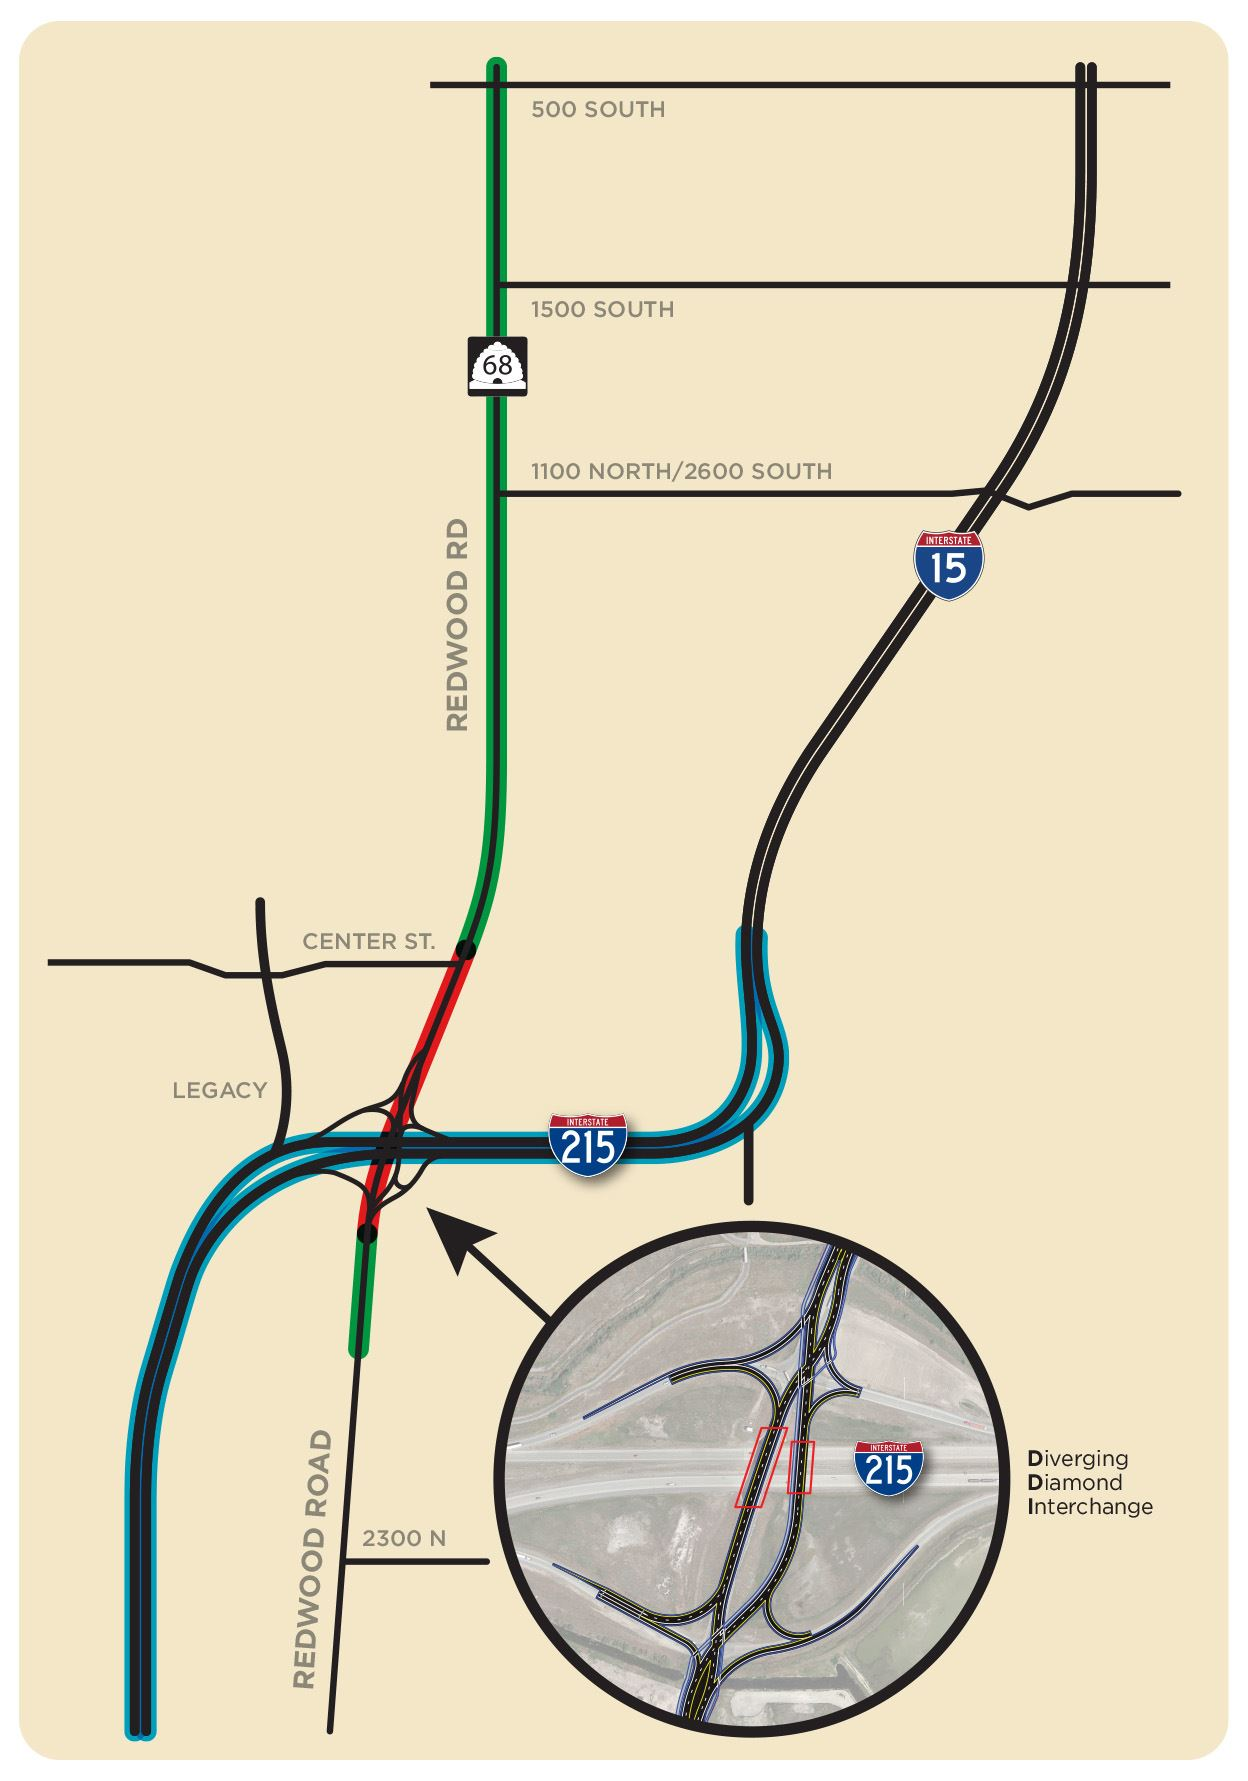 Redwood Road Interchange Map UDOT Early 18 project